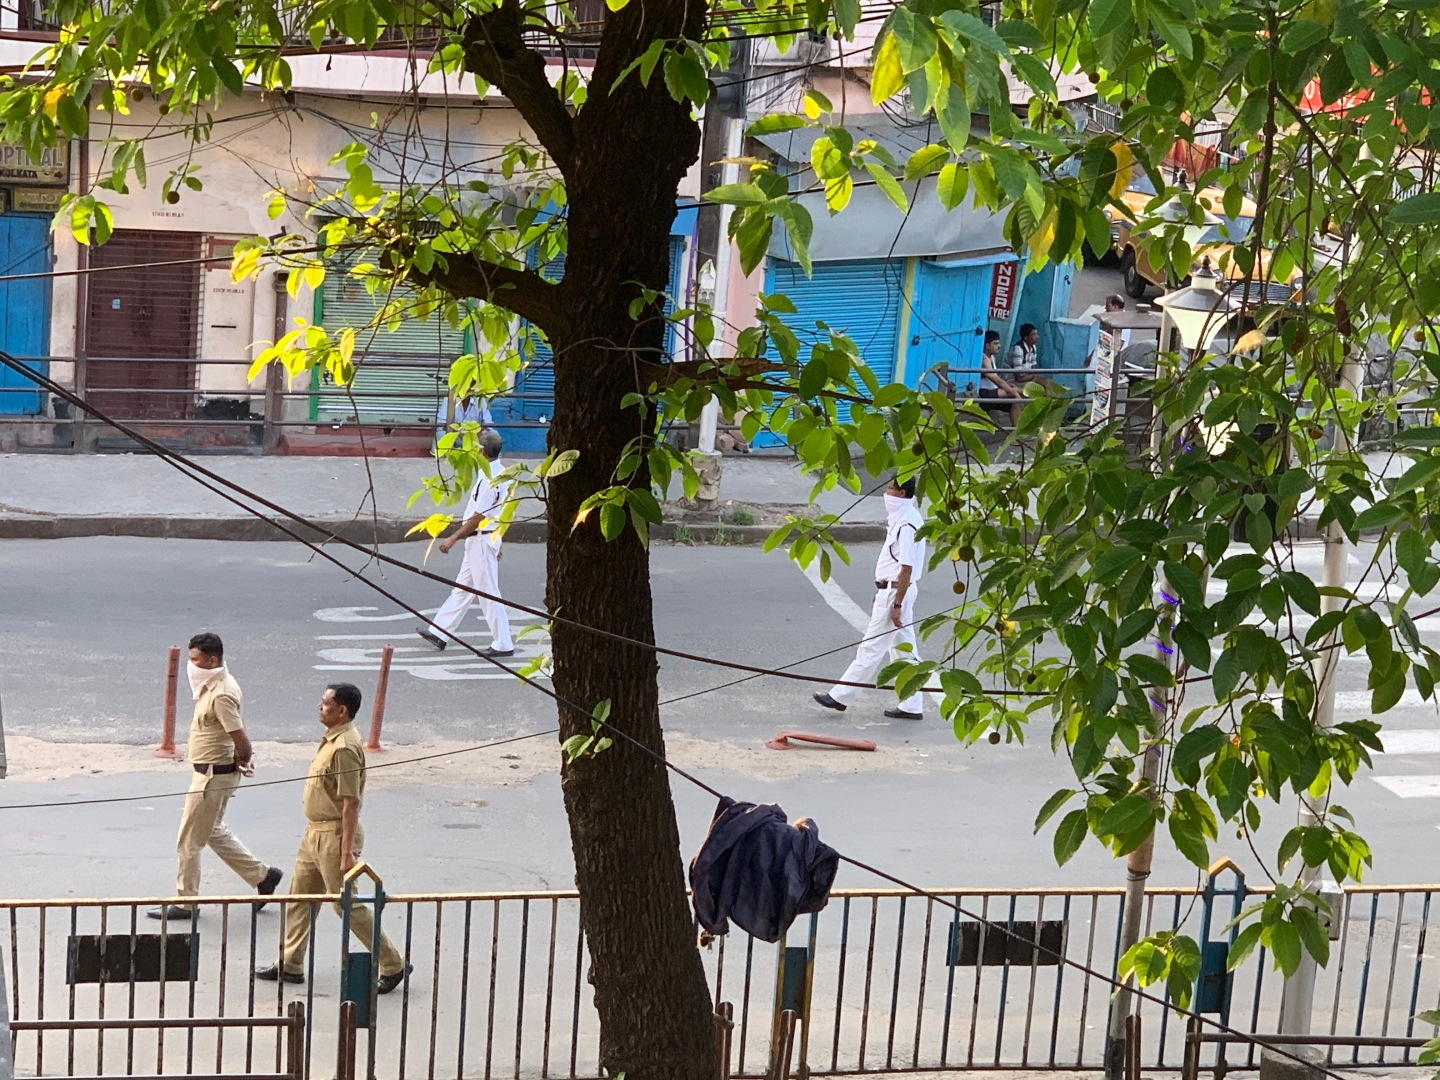 Situation of street during Lockdown for Corona crisis in Kolkata, West Bengal, India.